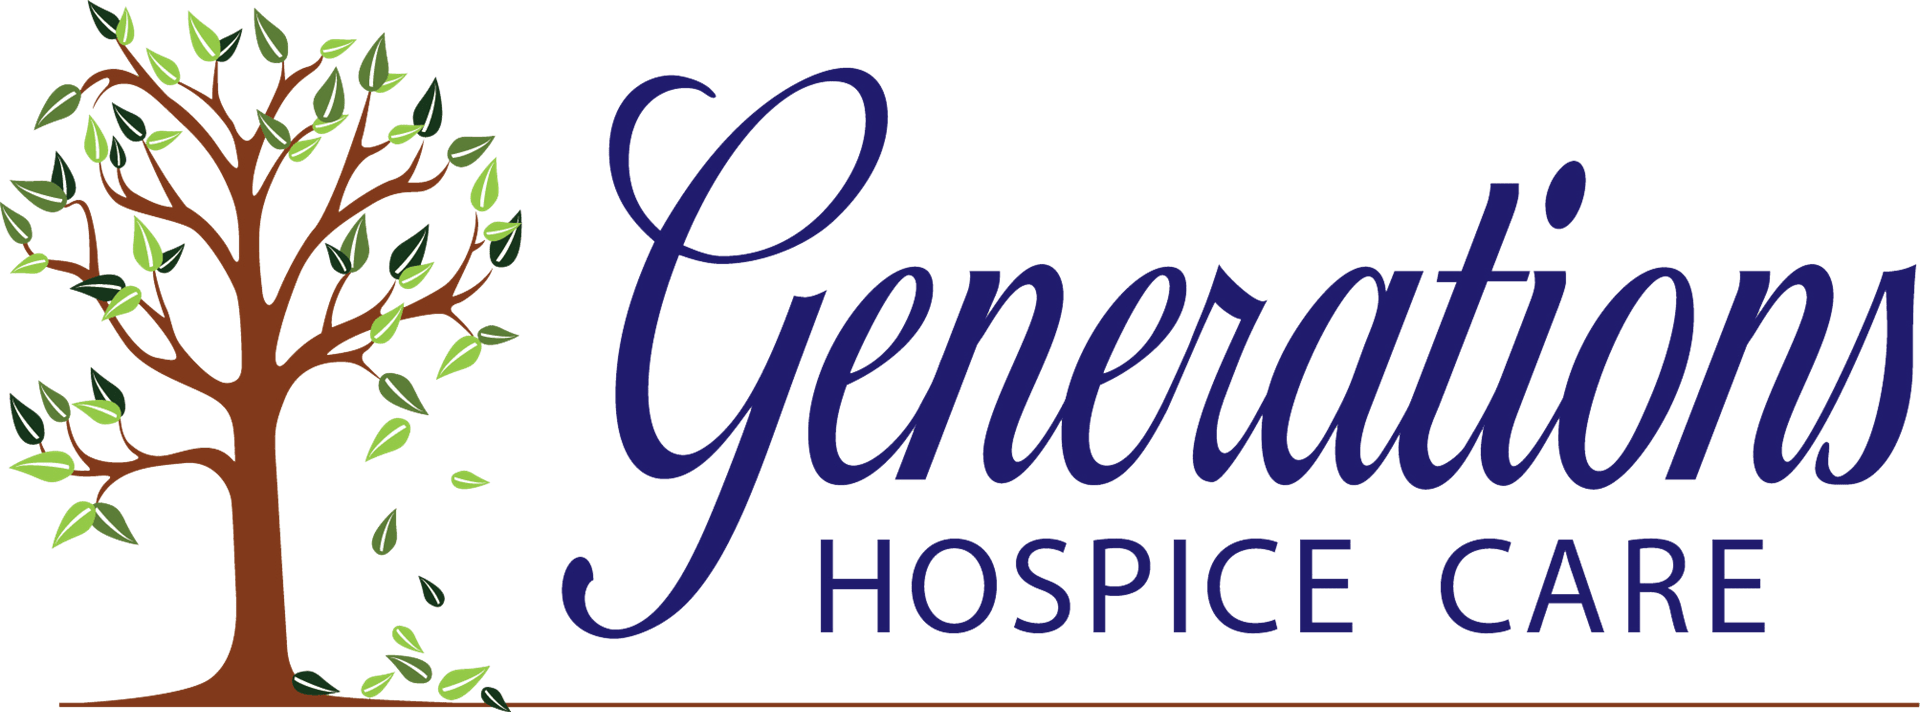 Generations Hospice Care